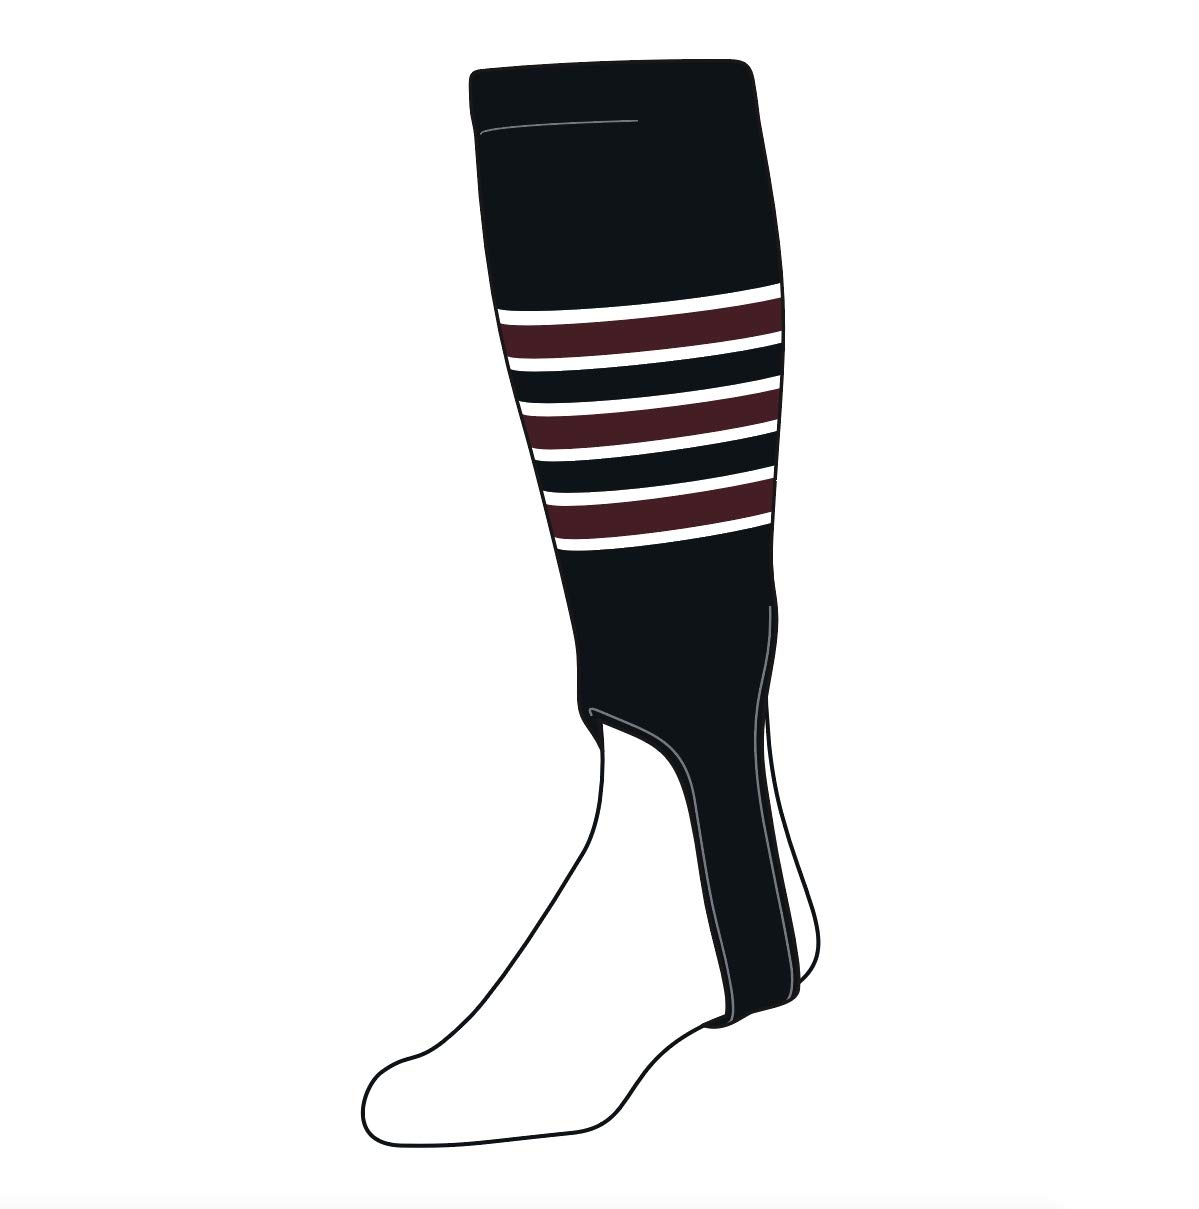 TCK Baseball Stirrups Large (300D, 5in) Black, White, Maroon by TCK Socks